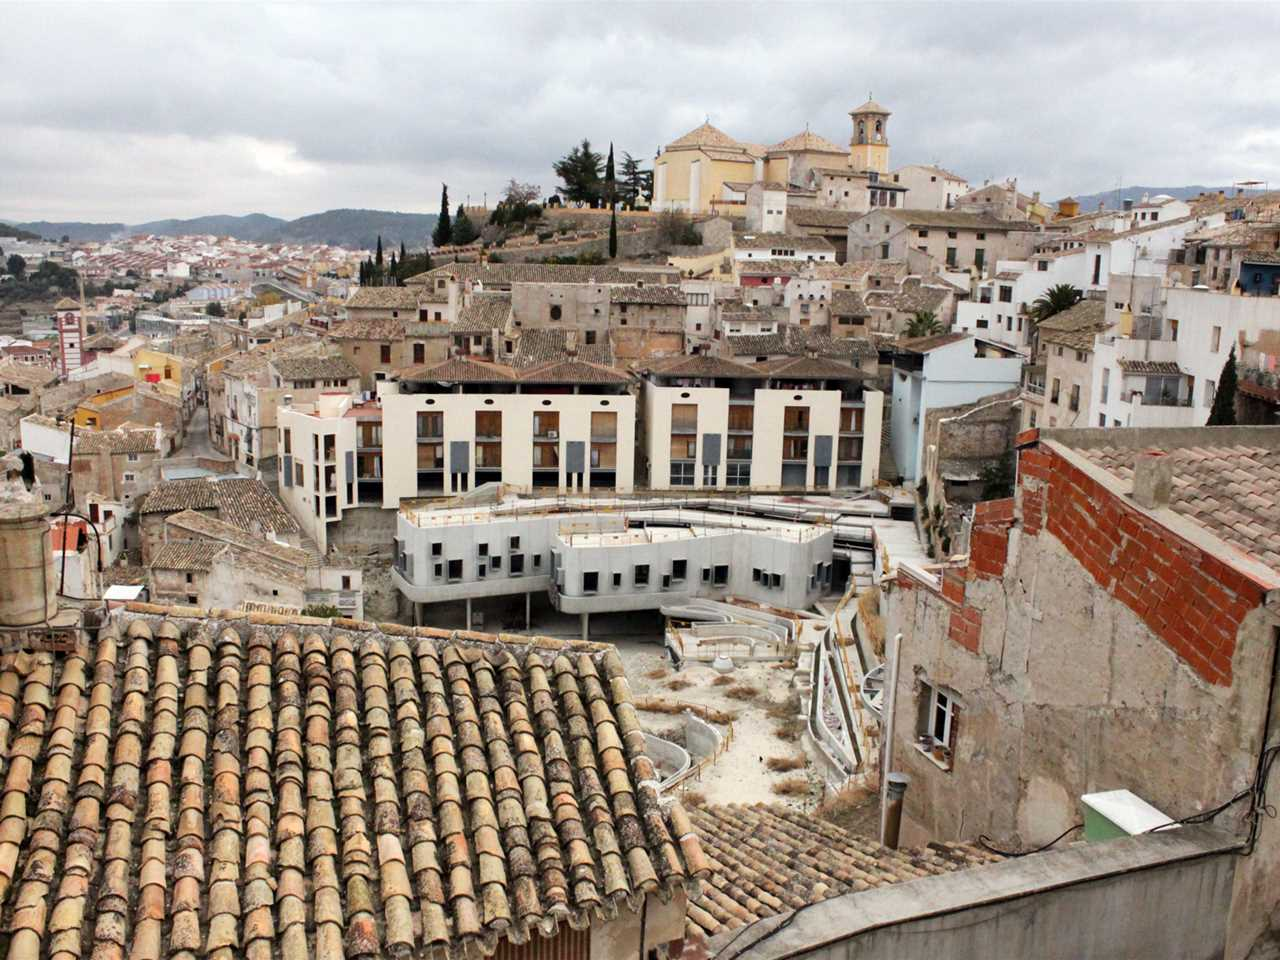 Project update February 2014 – The mysterious story of the garden that makes water, Cehegín, Spain